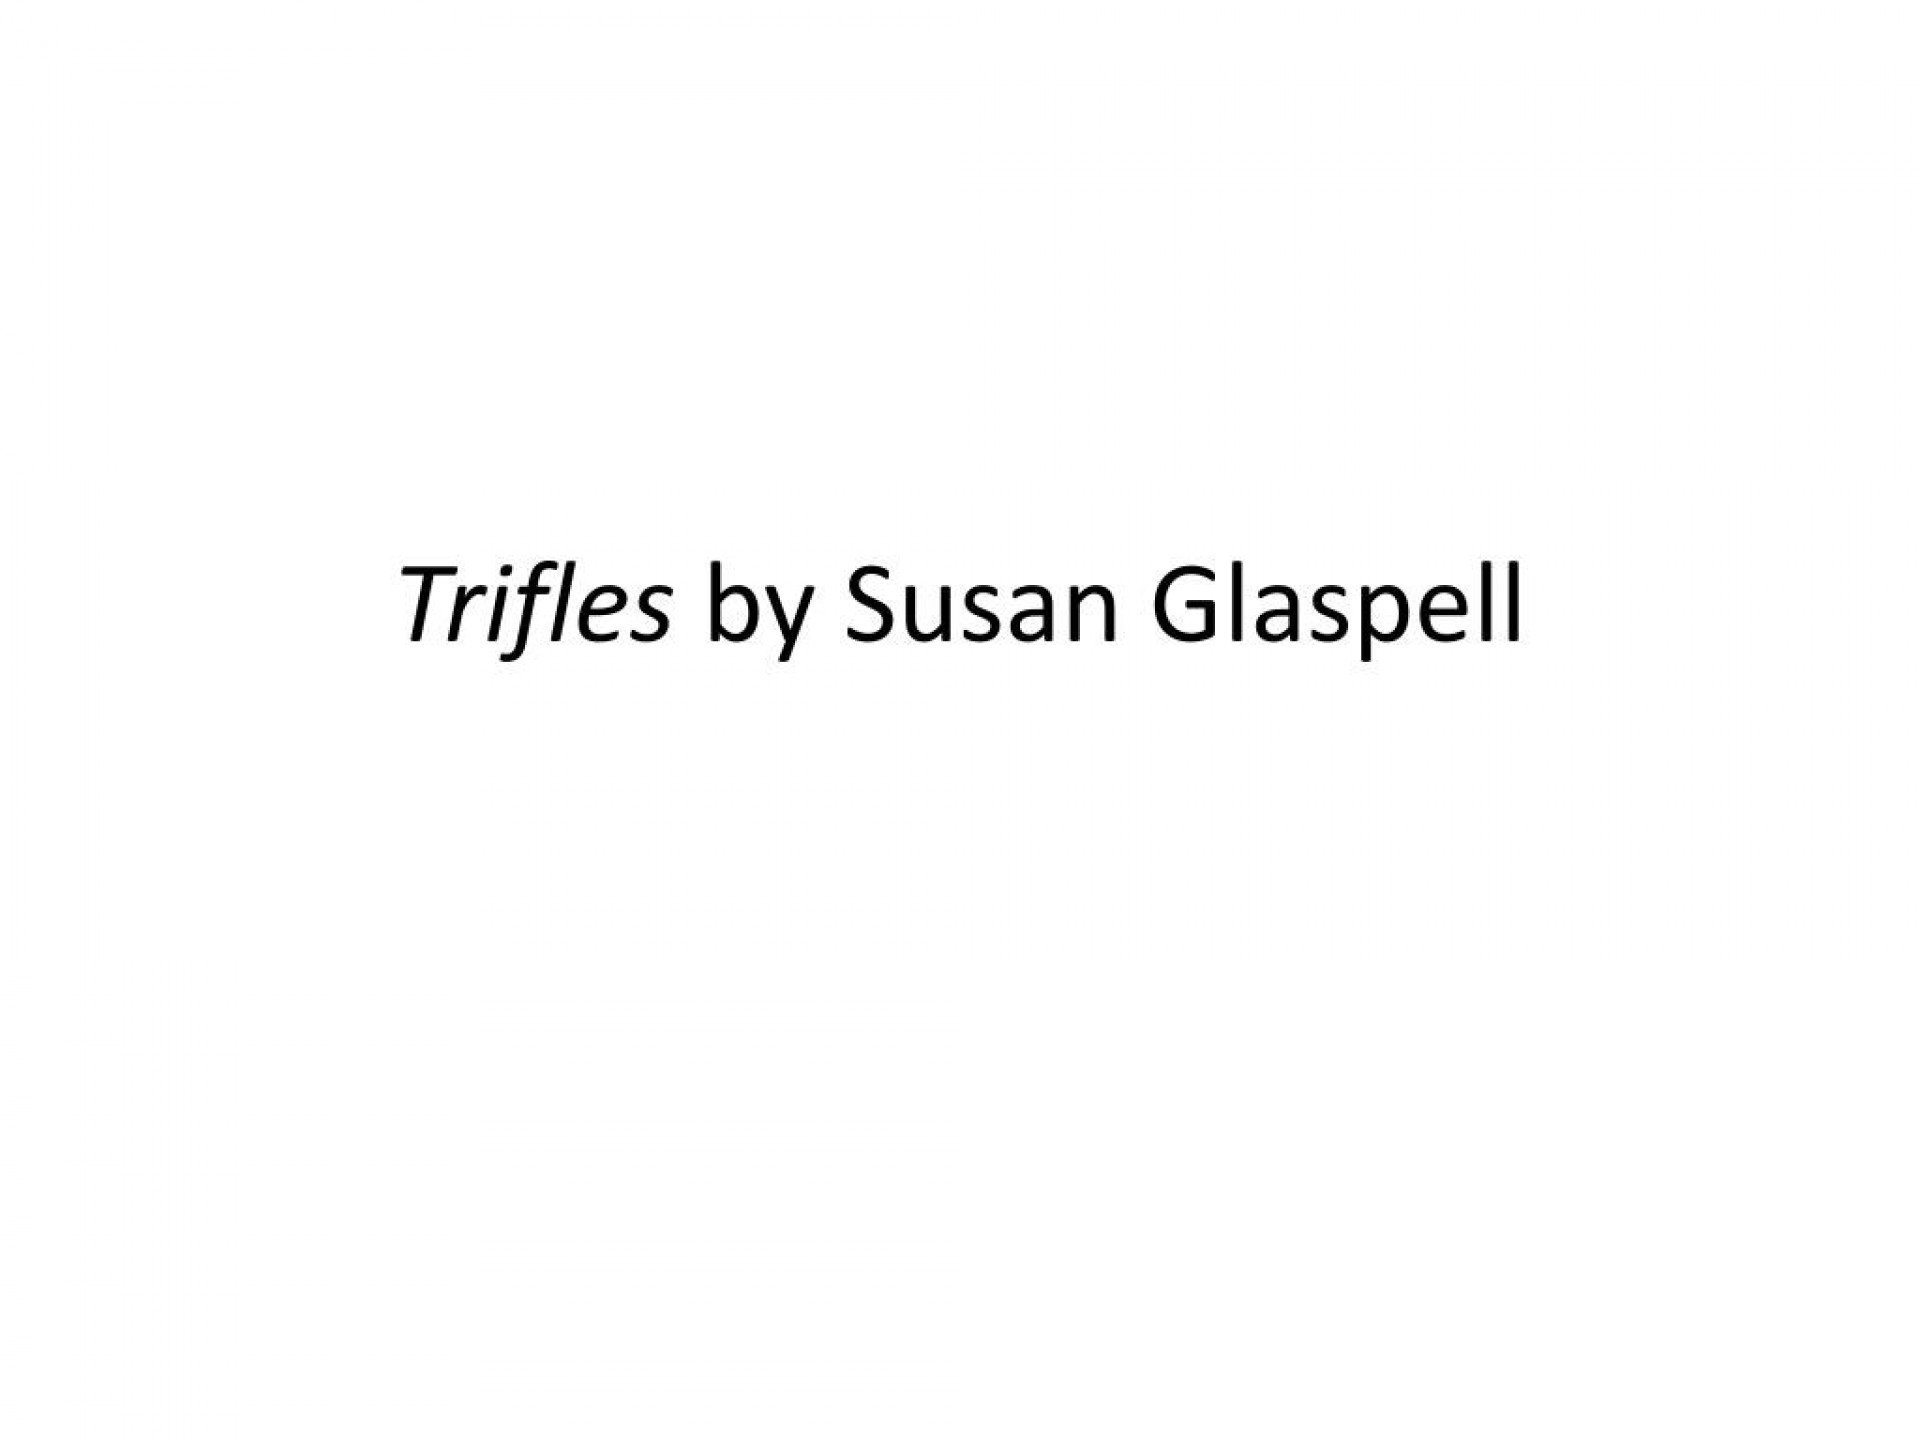 015 Trifles By Susan Glaspell L Essay Formidable Questions Feminism Topics 1920